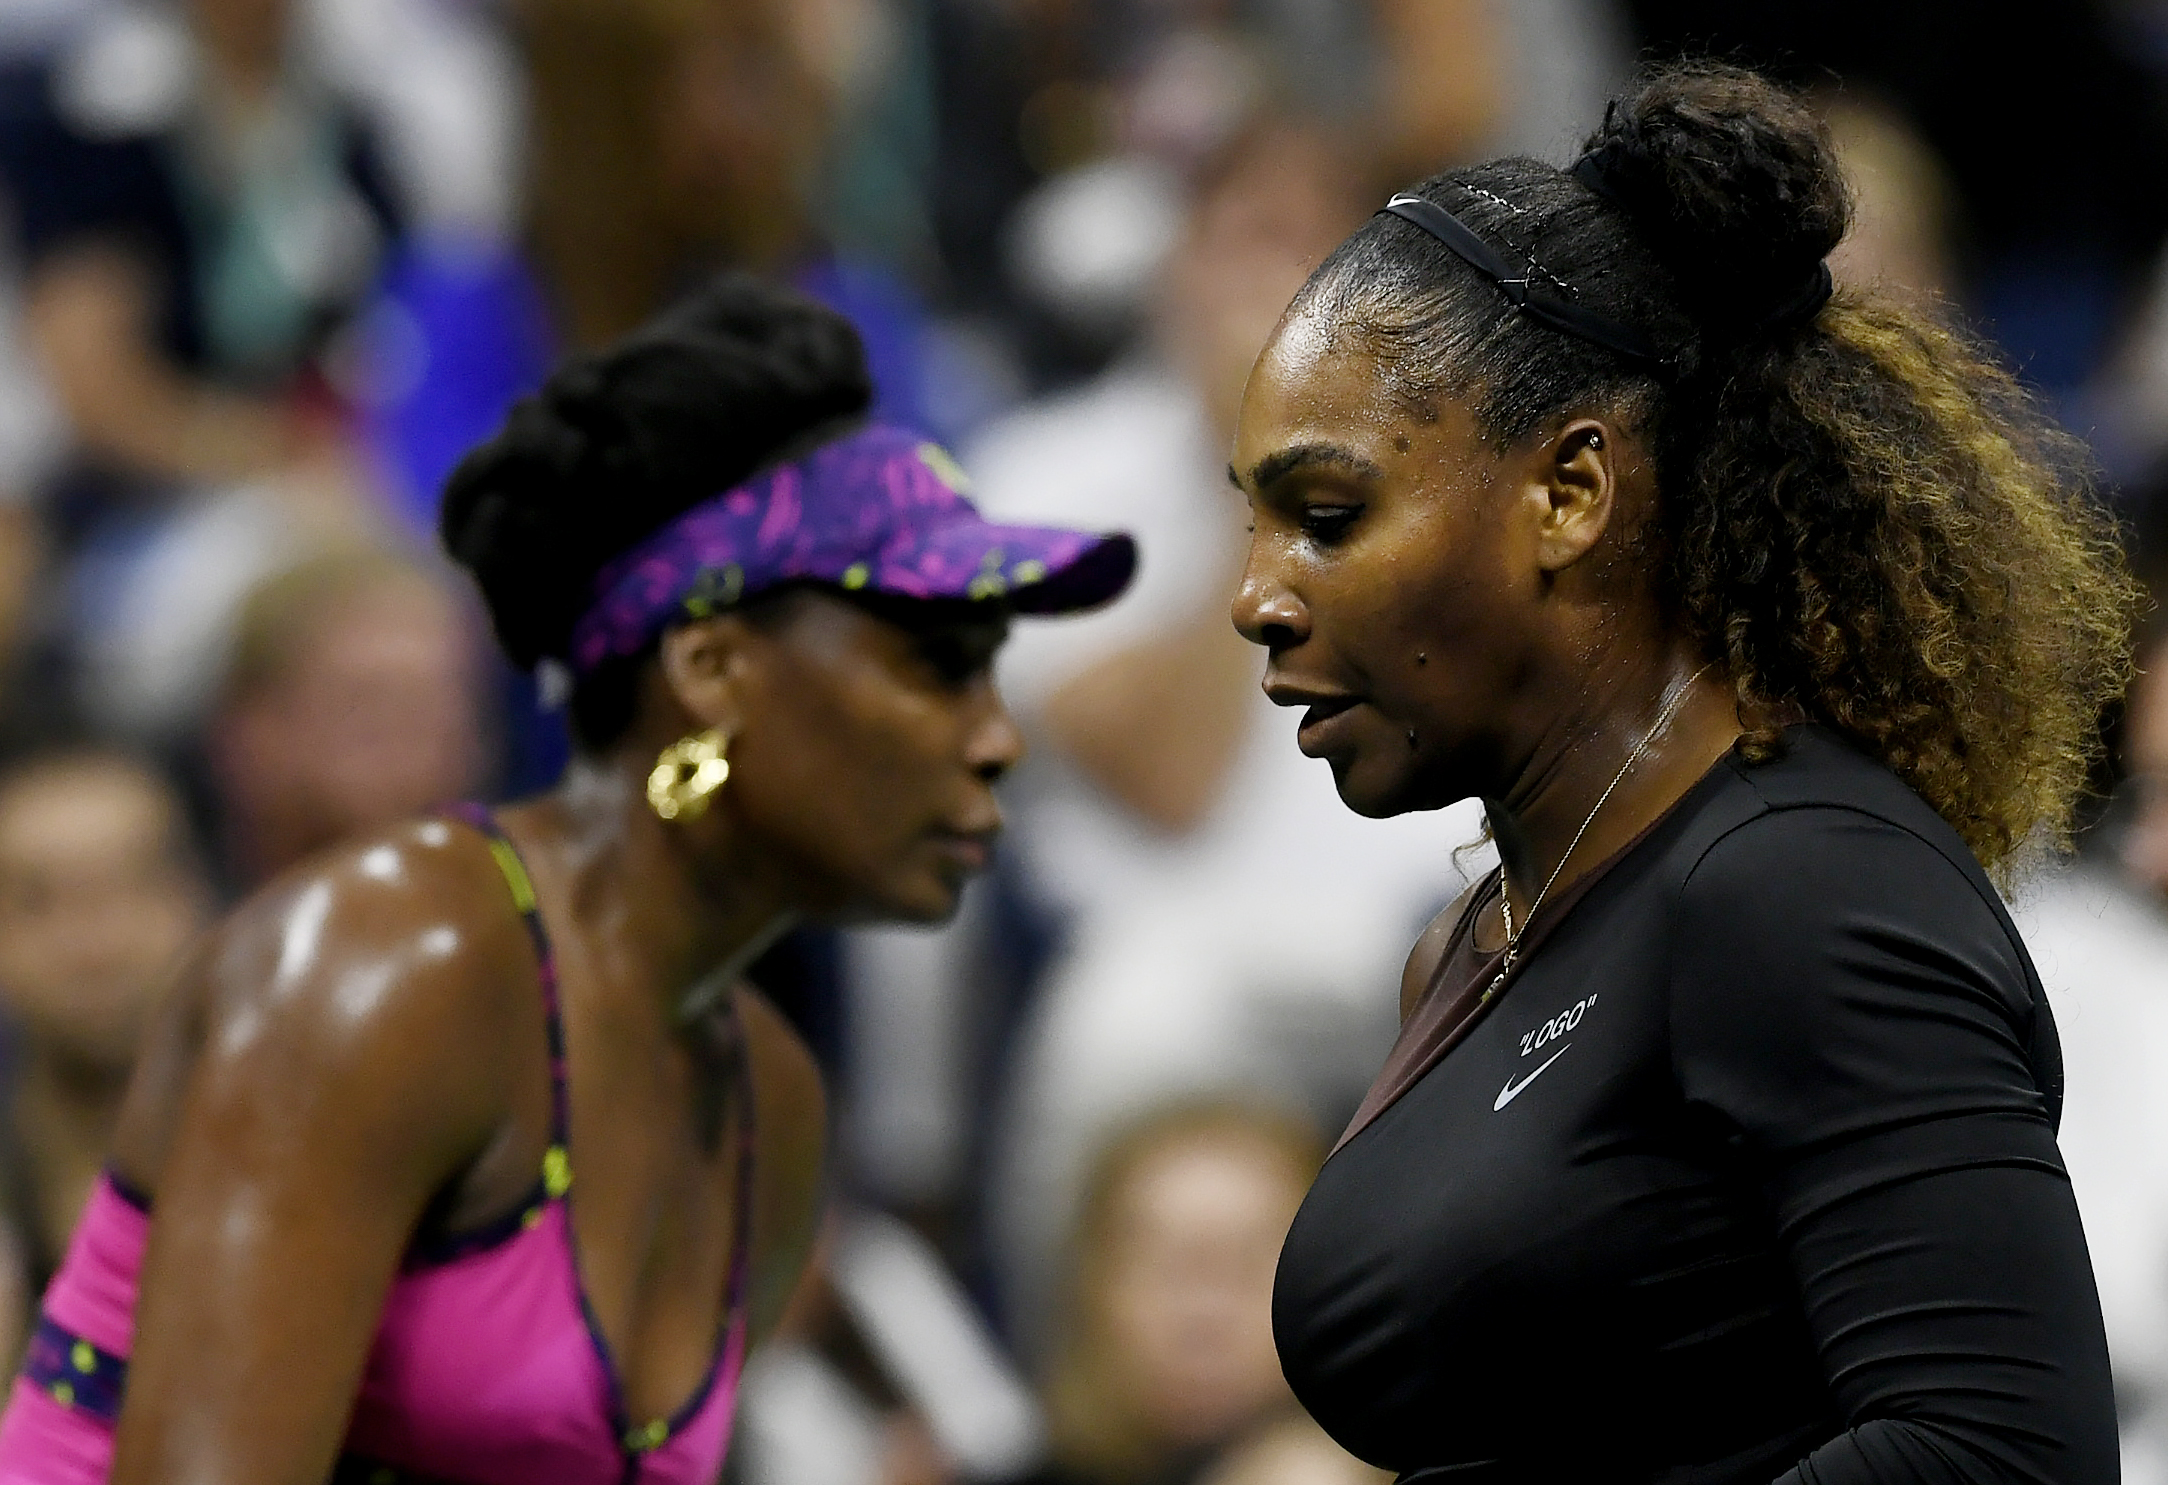 Venus Williams (L) and Serena Williams of the United States change ends during their women's singles third round match on Day Five of the 2018 US Open at the USTA Billie Jean King National Tennis Center on August 31, 2018 in the Flushing neighborhood of the Queens borough of New York City.